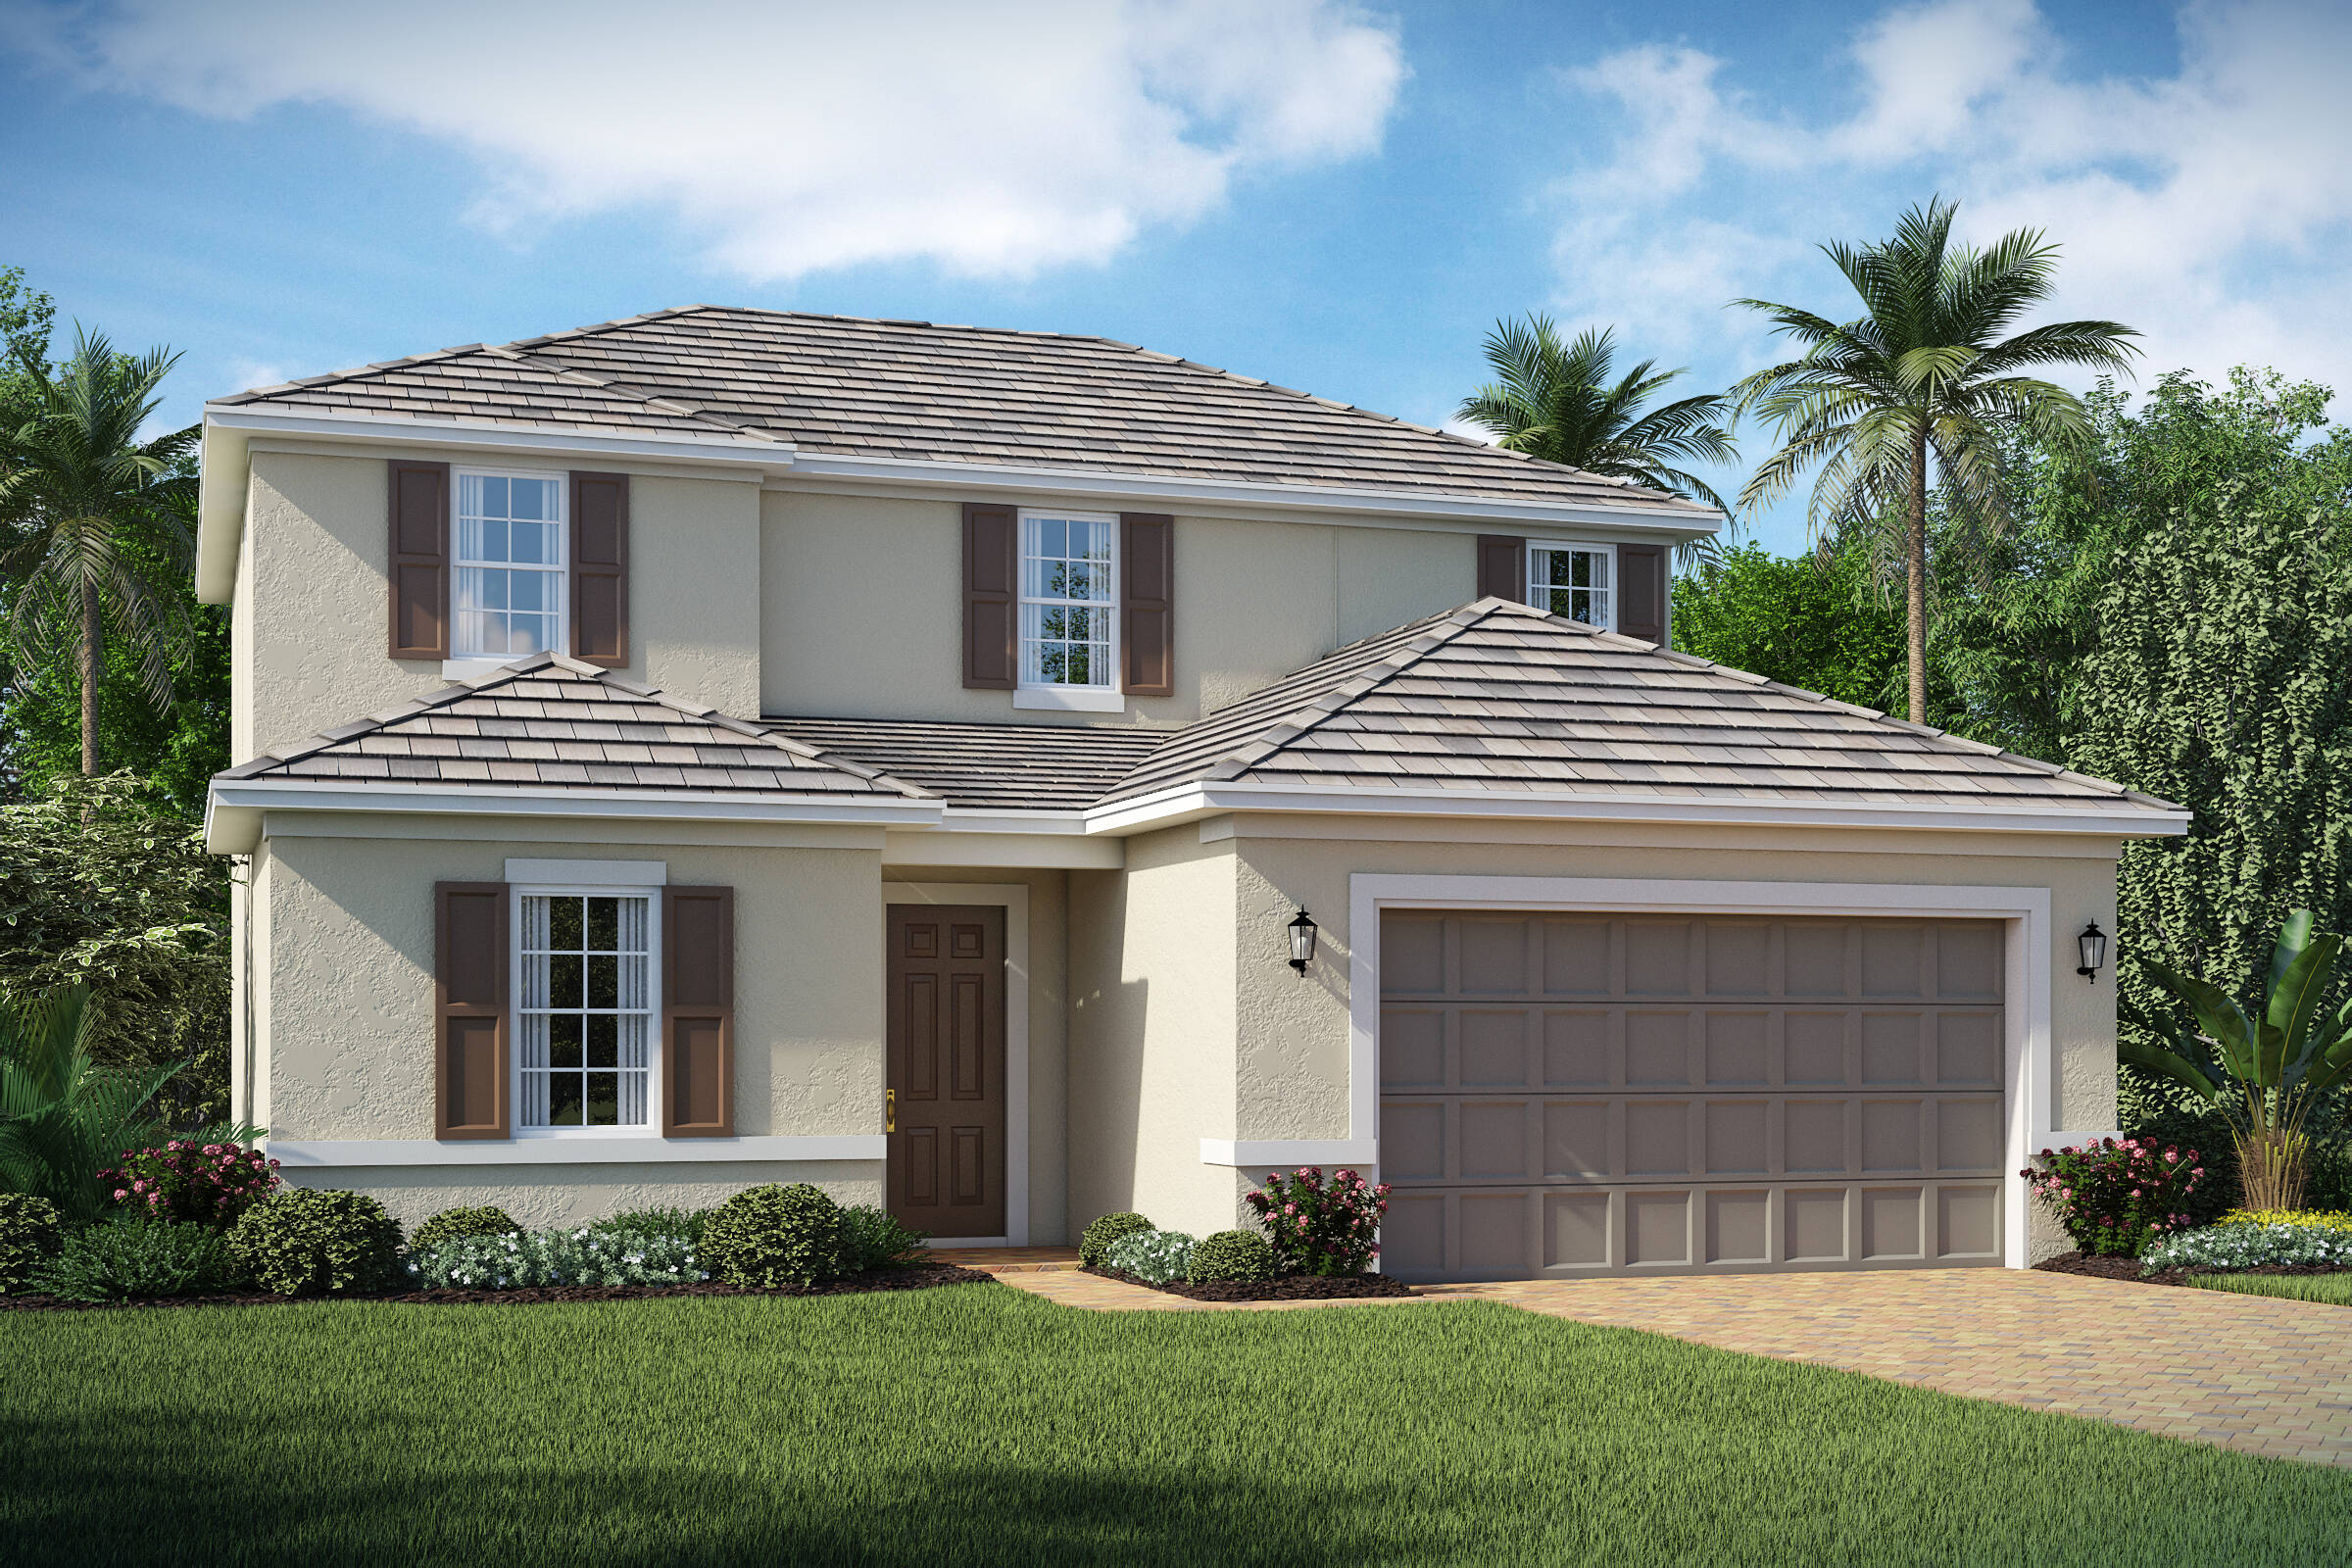 Bessemer A exterior lake florence preserve new homes in orlando florida